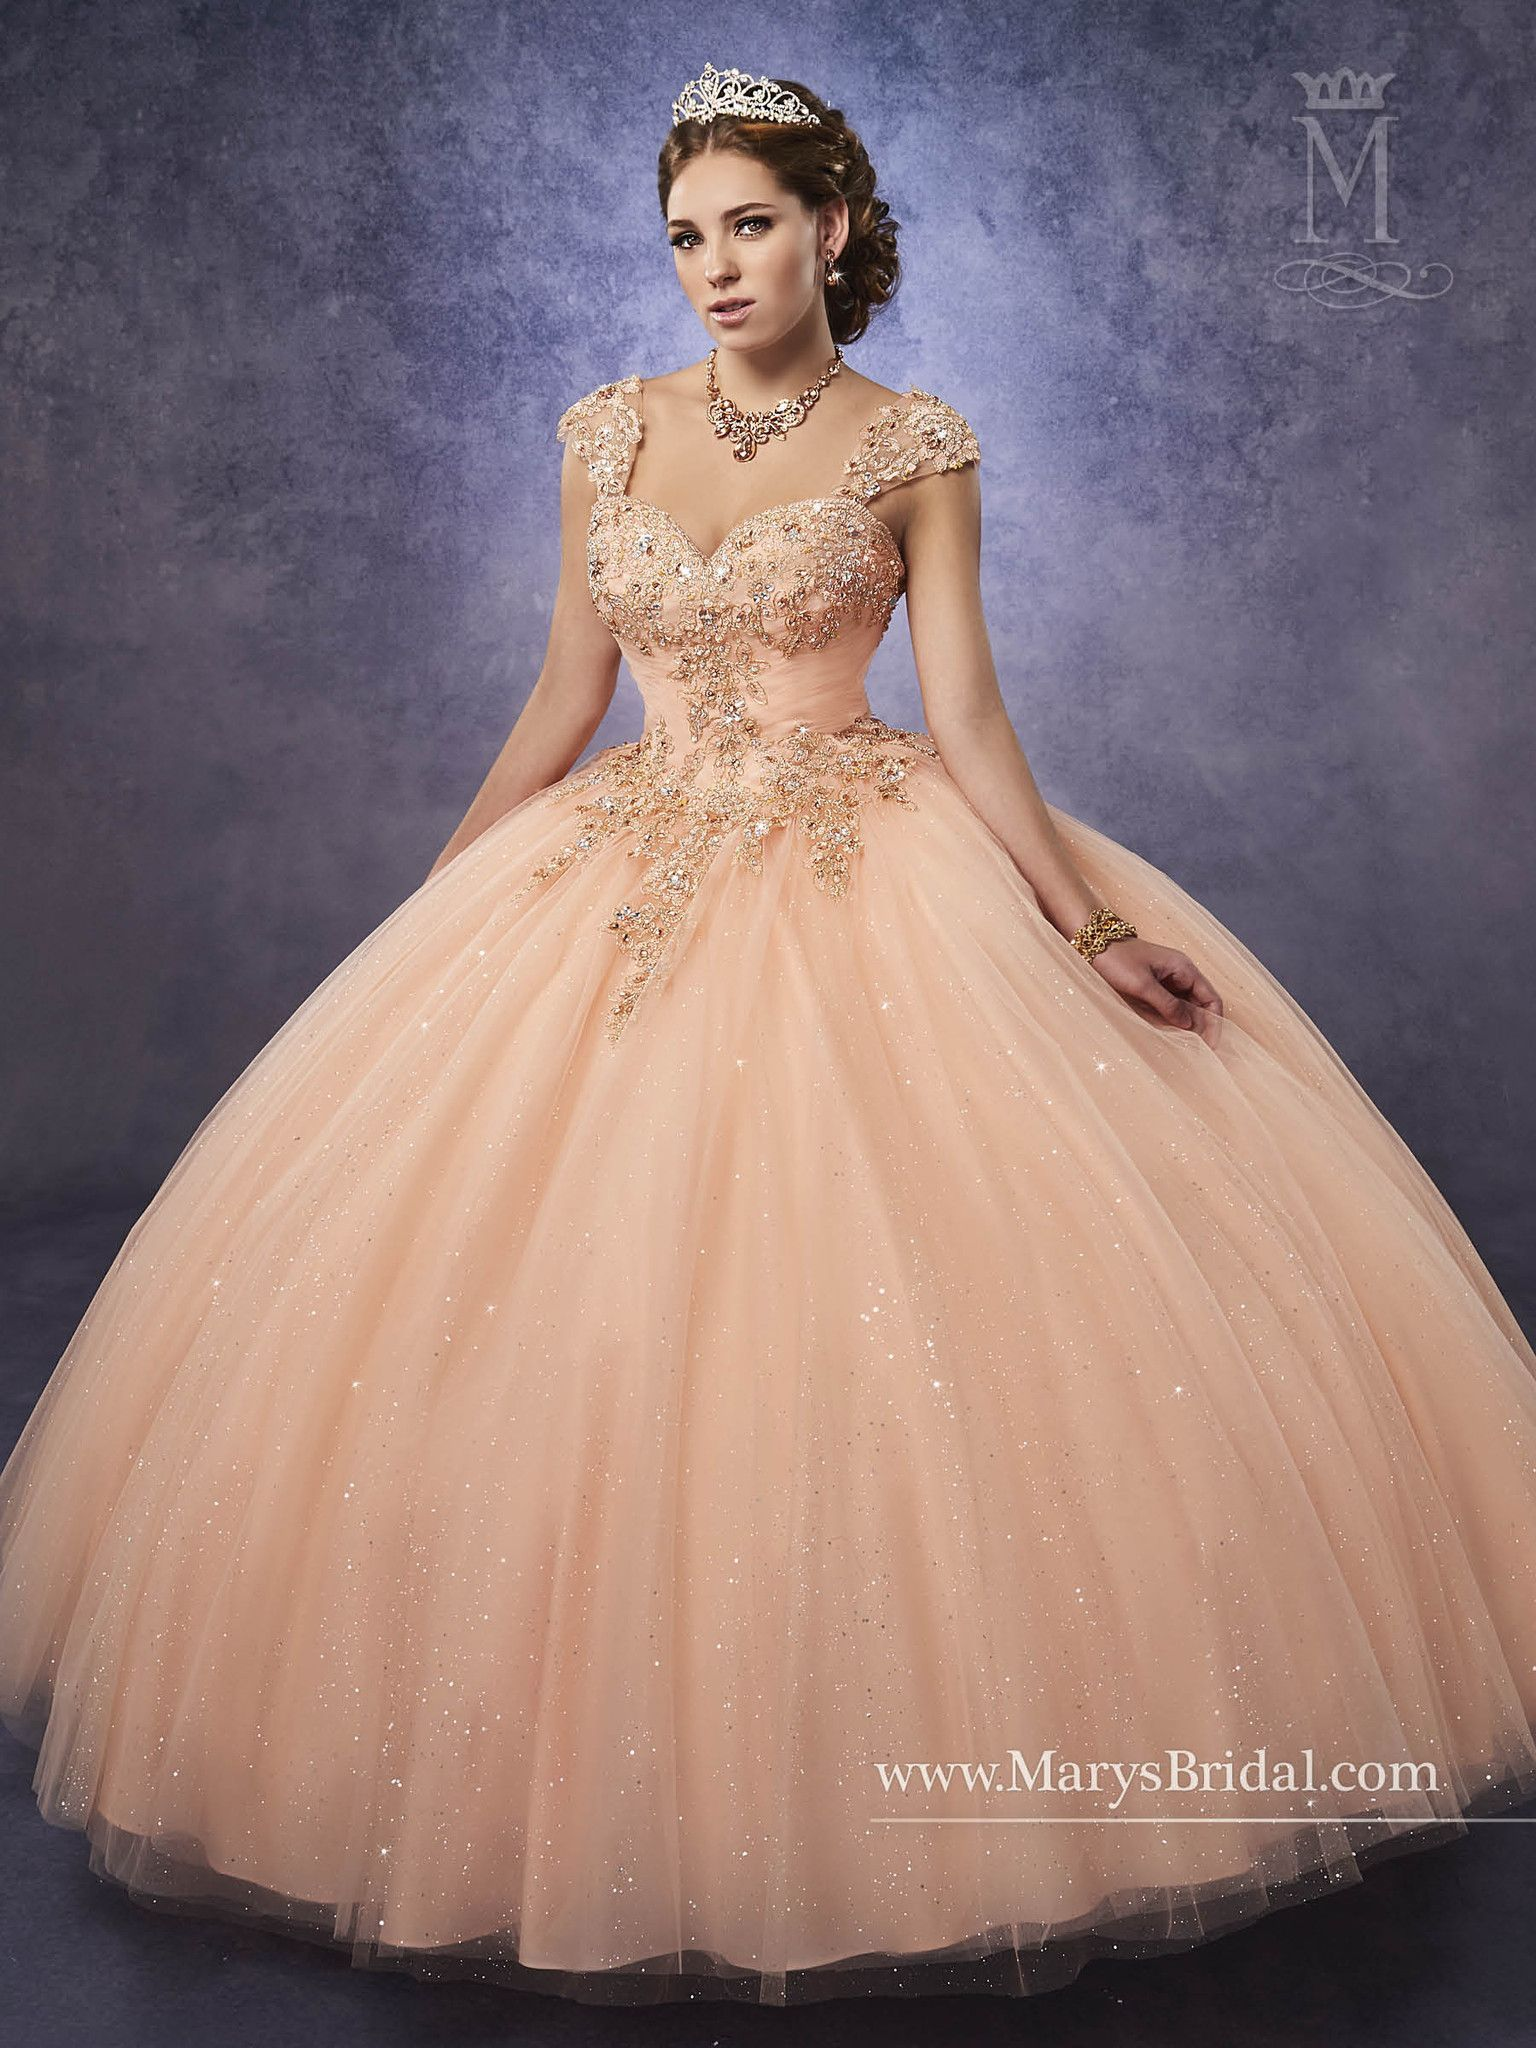 Mary\'s Bridal Princess Collection Quinceanera Dress Style 4Q491 ...